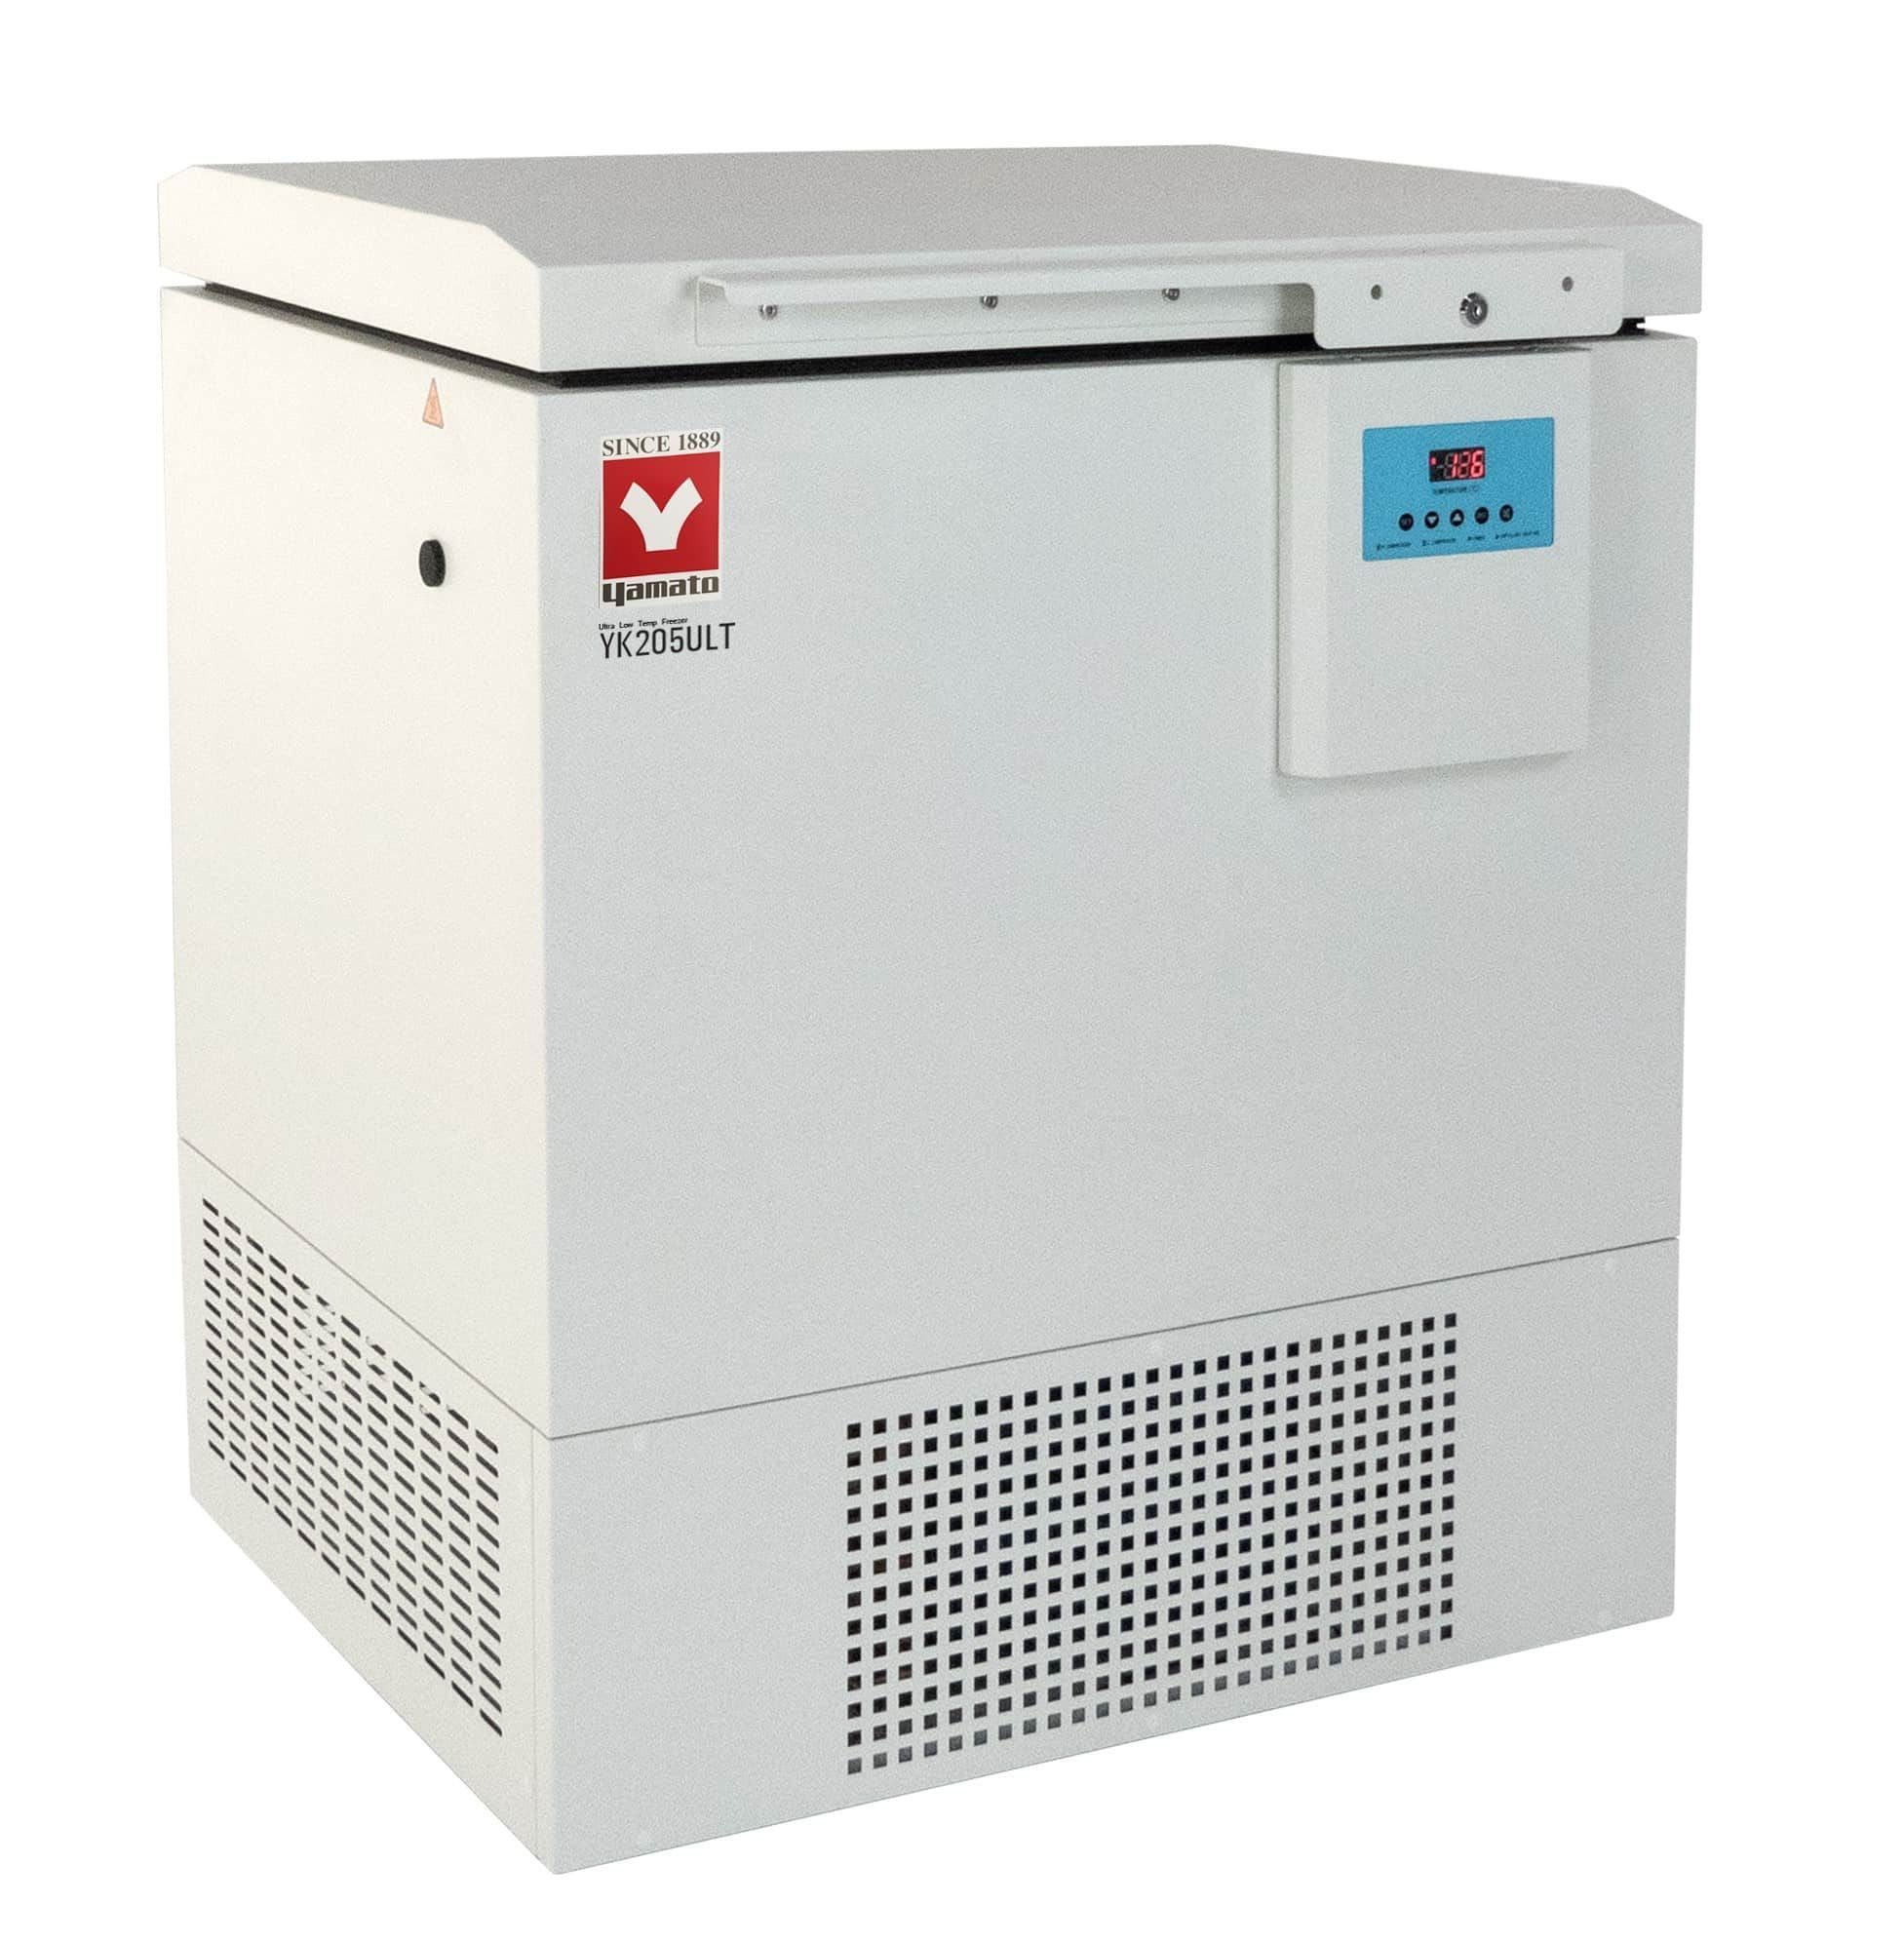 Yamato YK205ULT Ultra Low Temperature Freezer